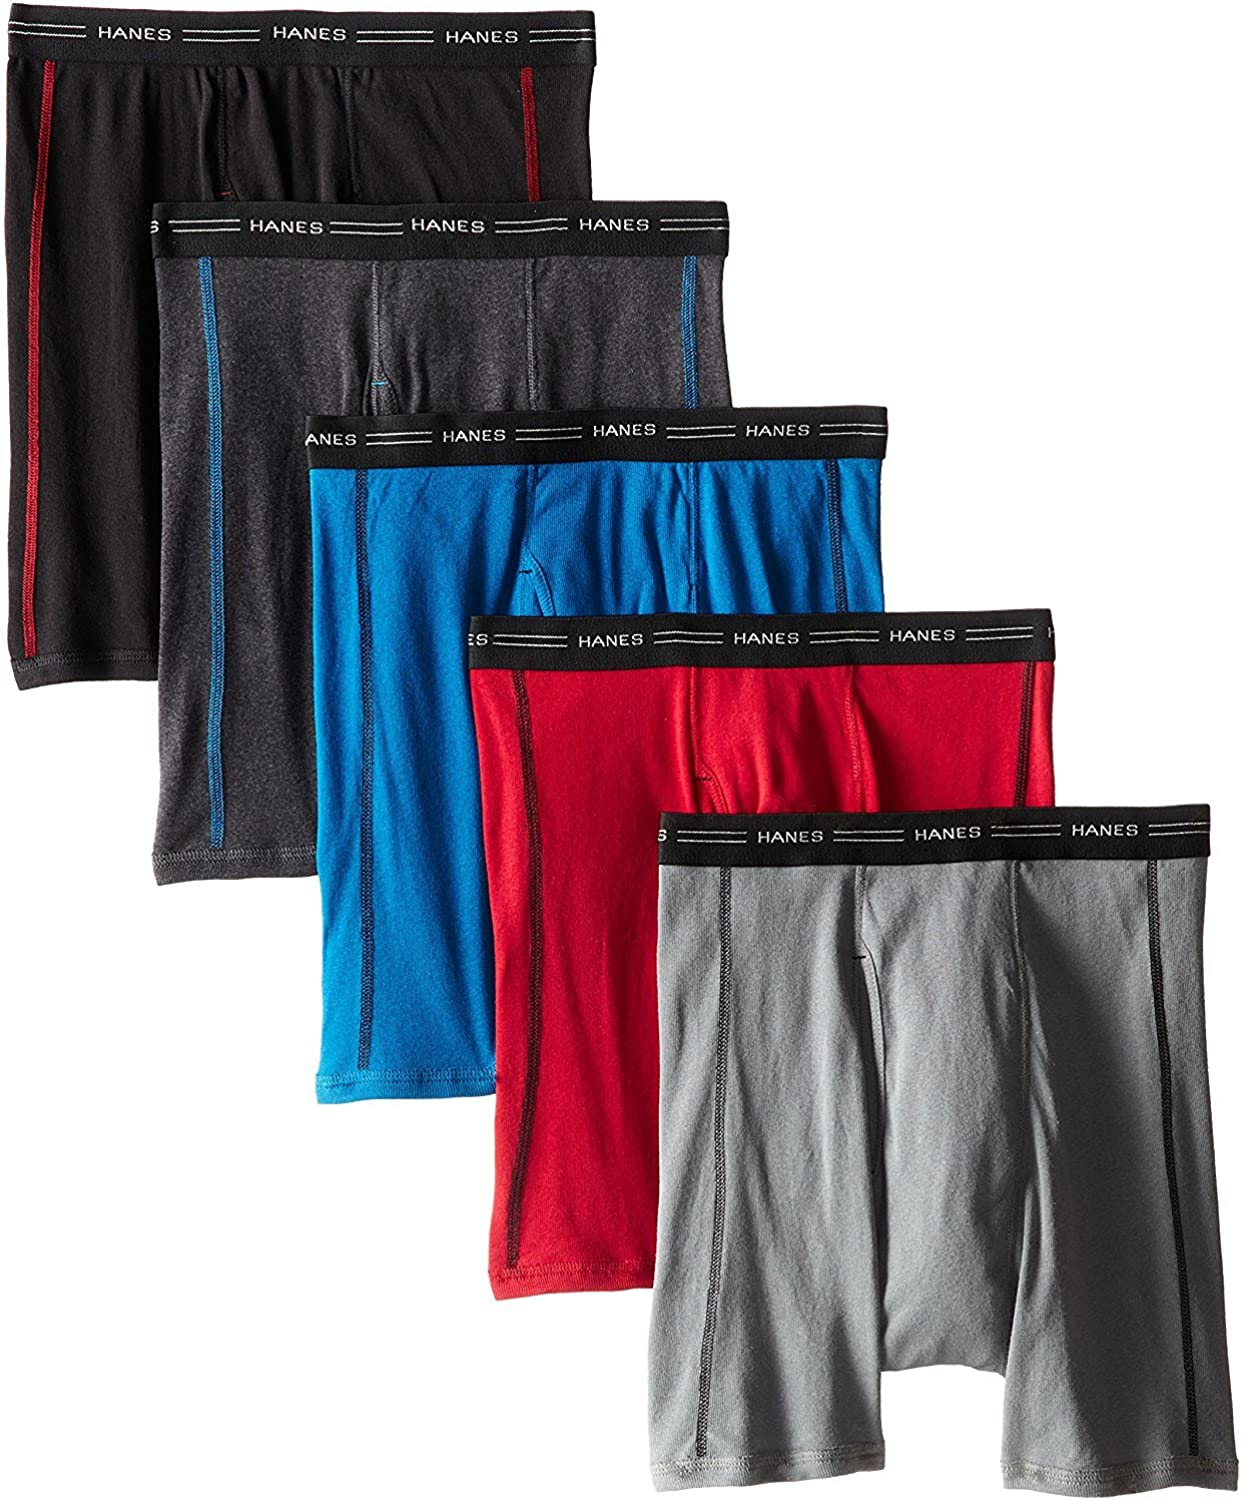 Hanes Sport Boxer Brief with Comfort Waistband 5 Pack Assorted Color XX-Large